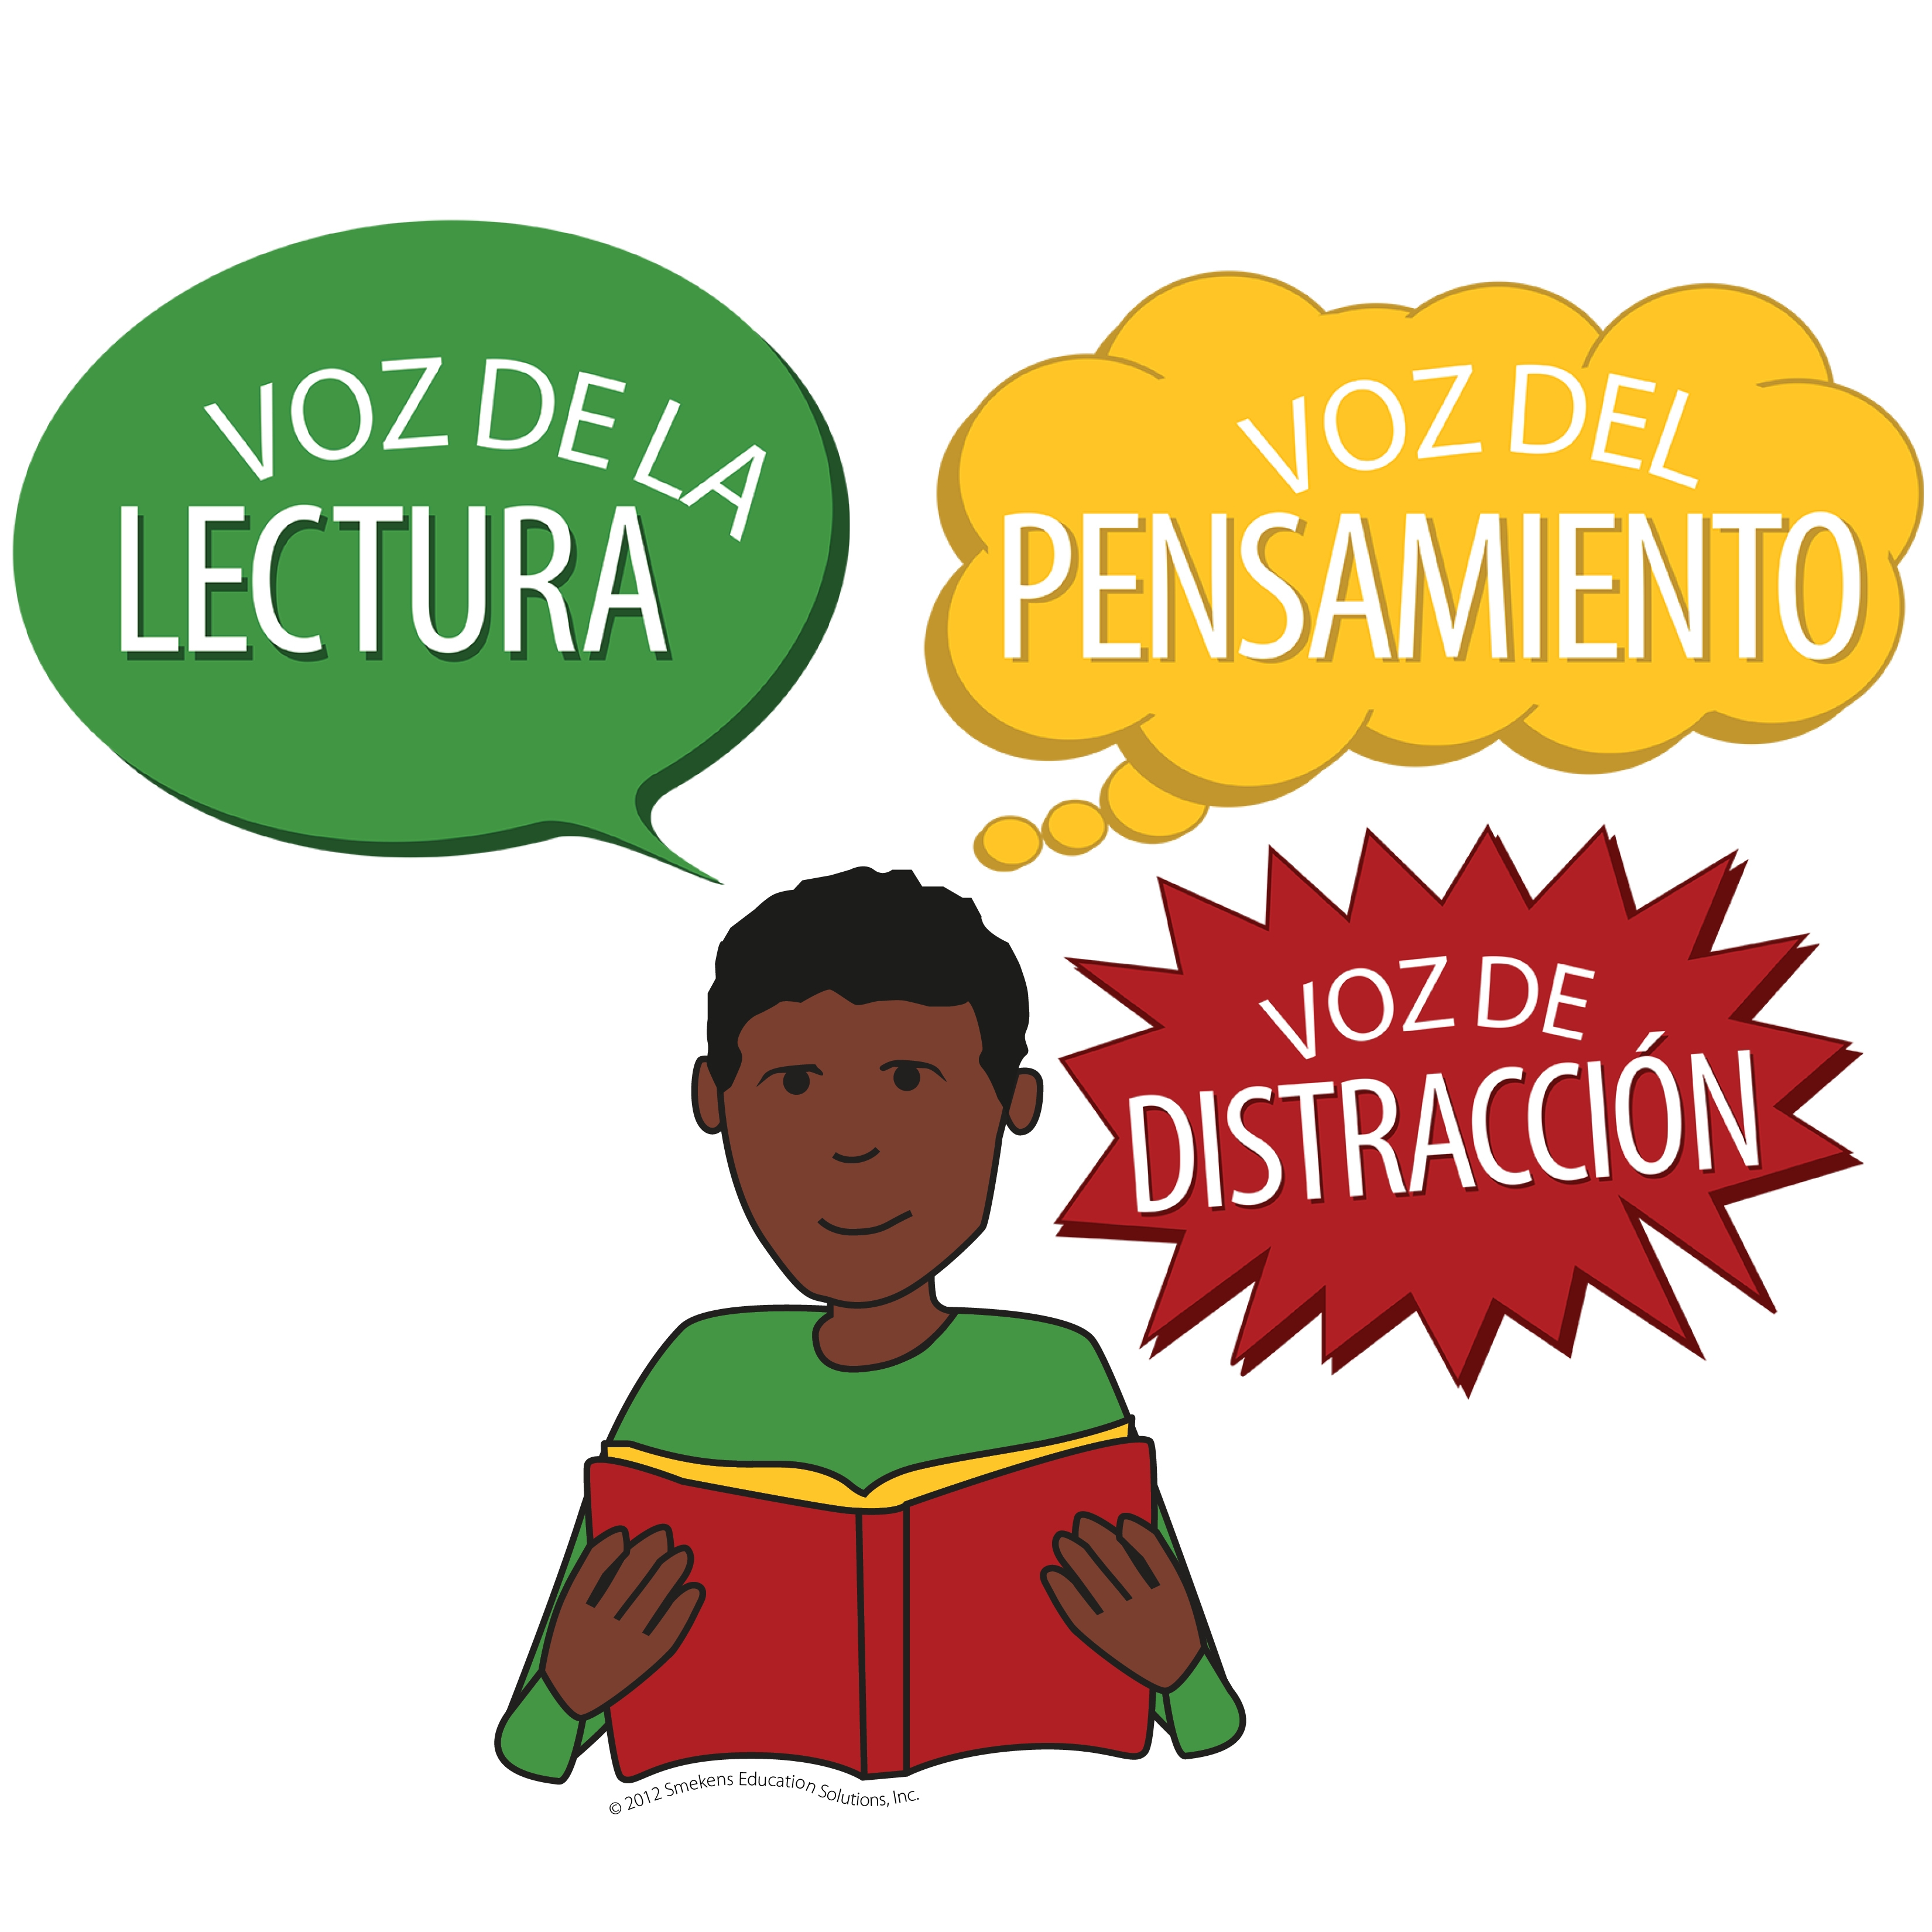 Reading Voice, Thinking Voice, Distracting Voice - Icons with Words - Version 2 - Spanish